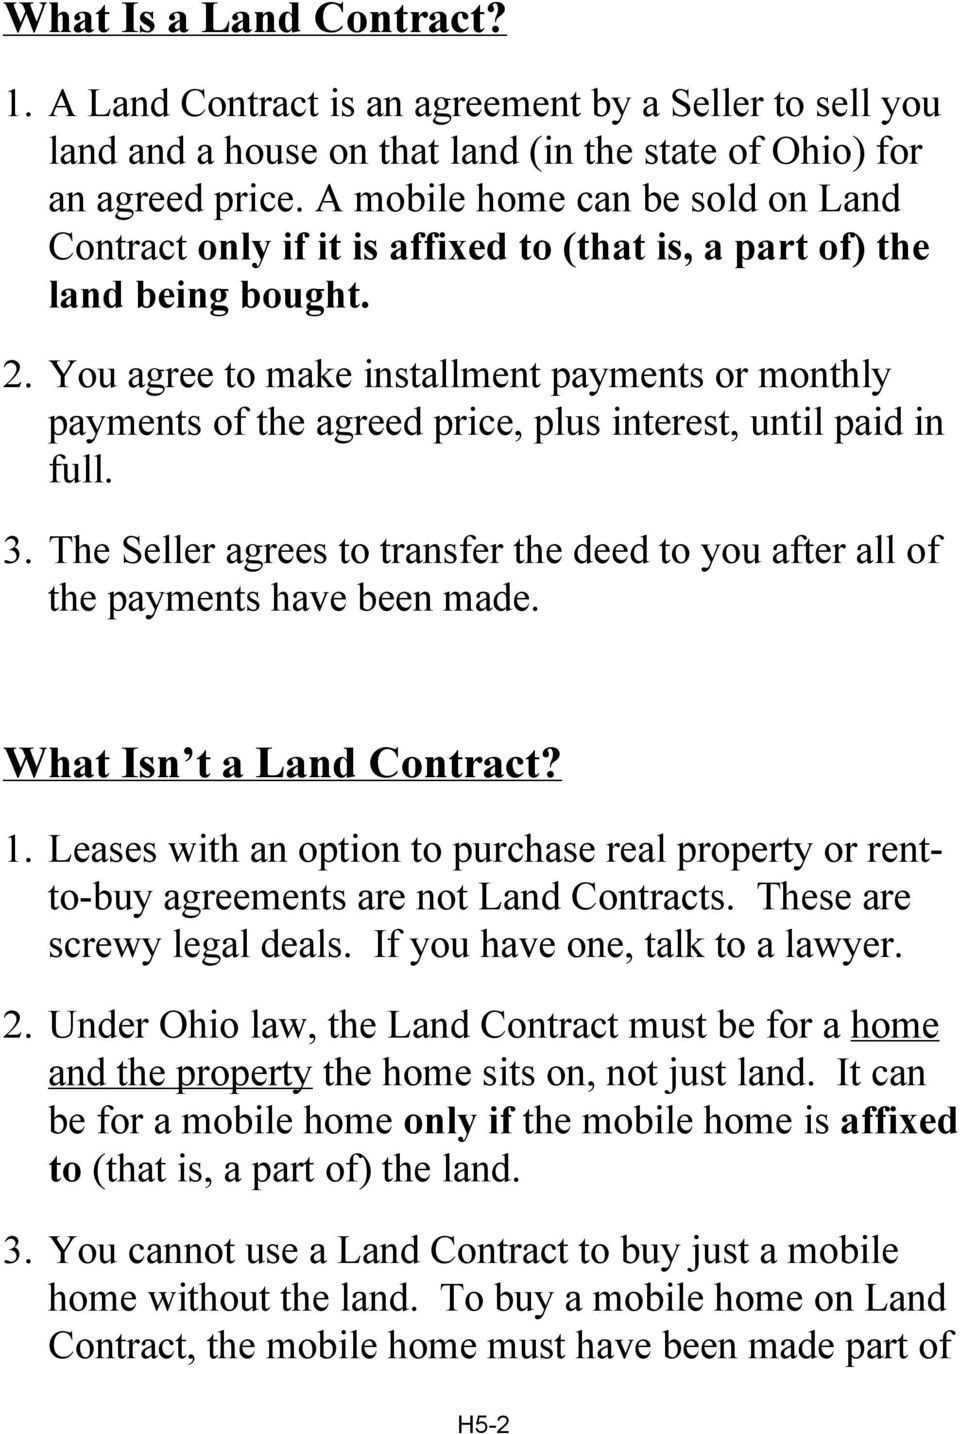 What You Should Know About Land Contracts Pdf